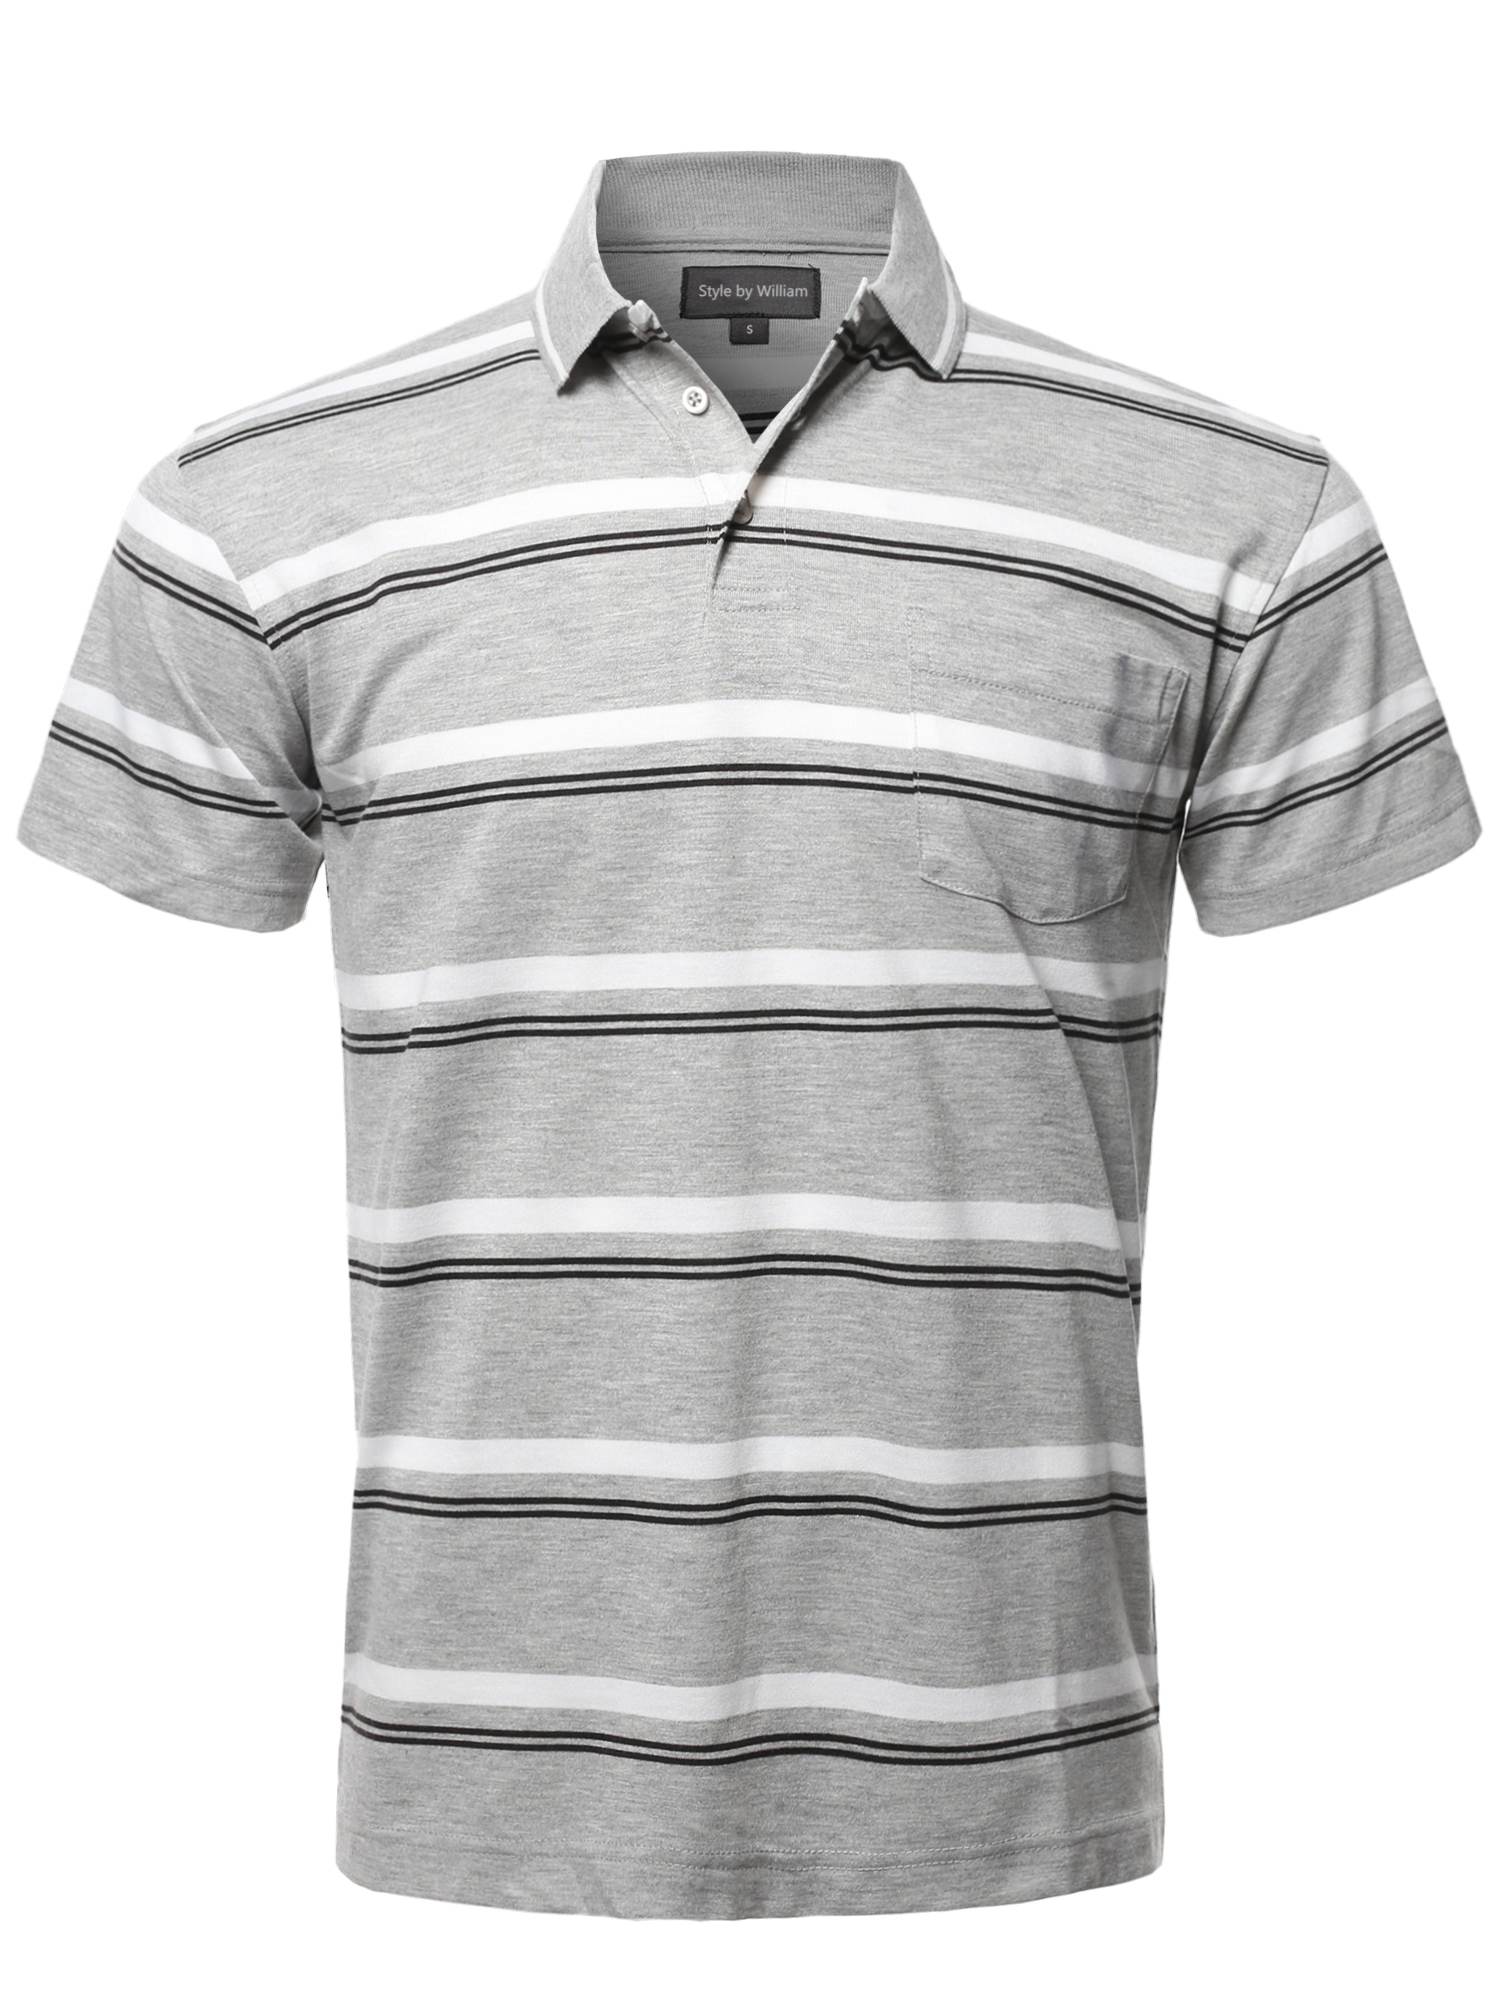 64775f7bf FashionOutfit Men's Casual Summer Basic Striped Chest Pocket Short Sleeve  Polo T-Shirt